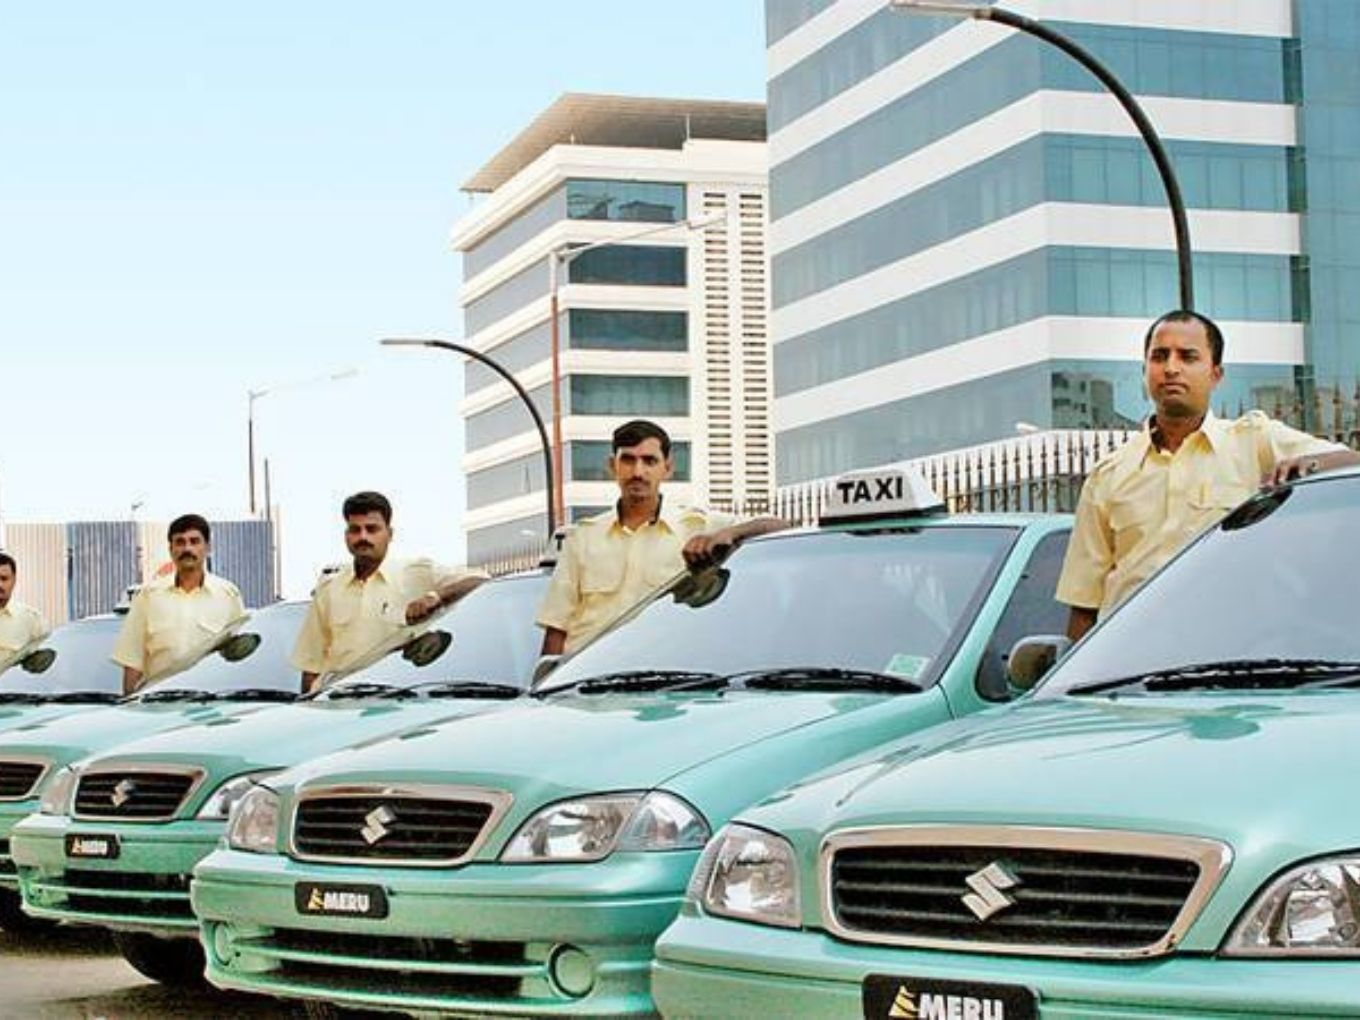 Meru Cabs Looks To Raise INR 400 Cr To Bolster EV Business